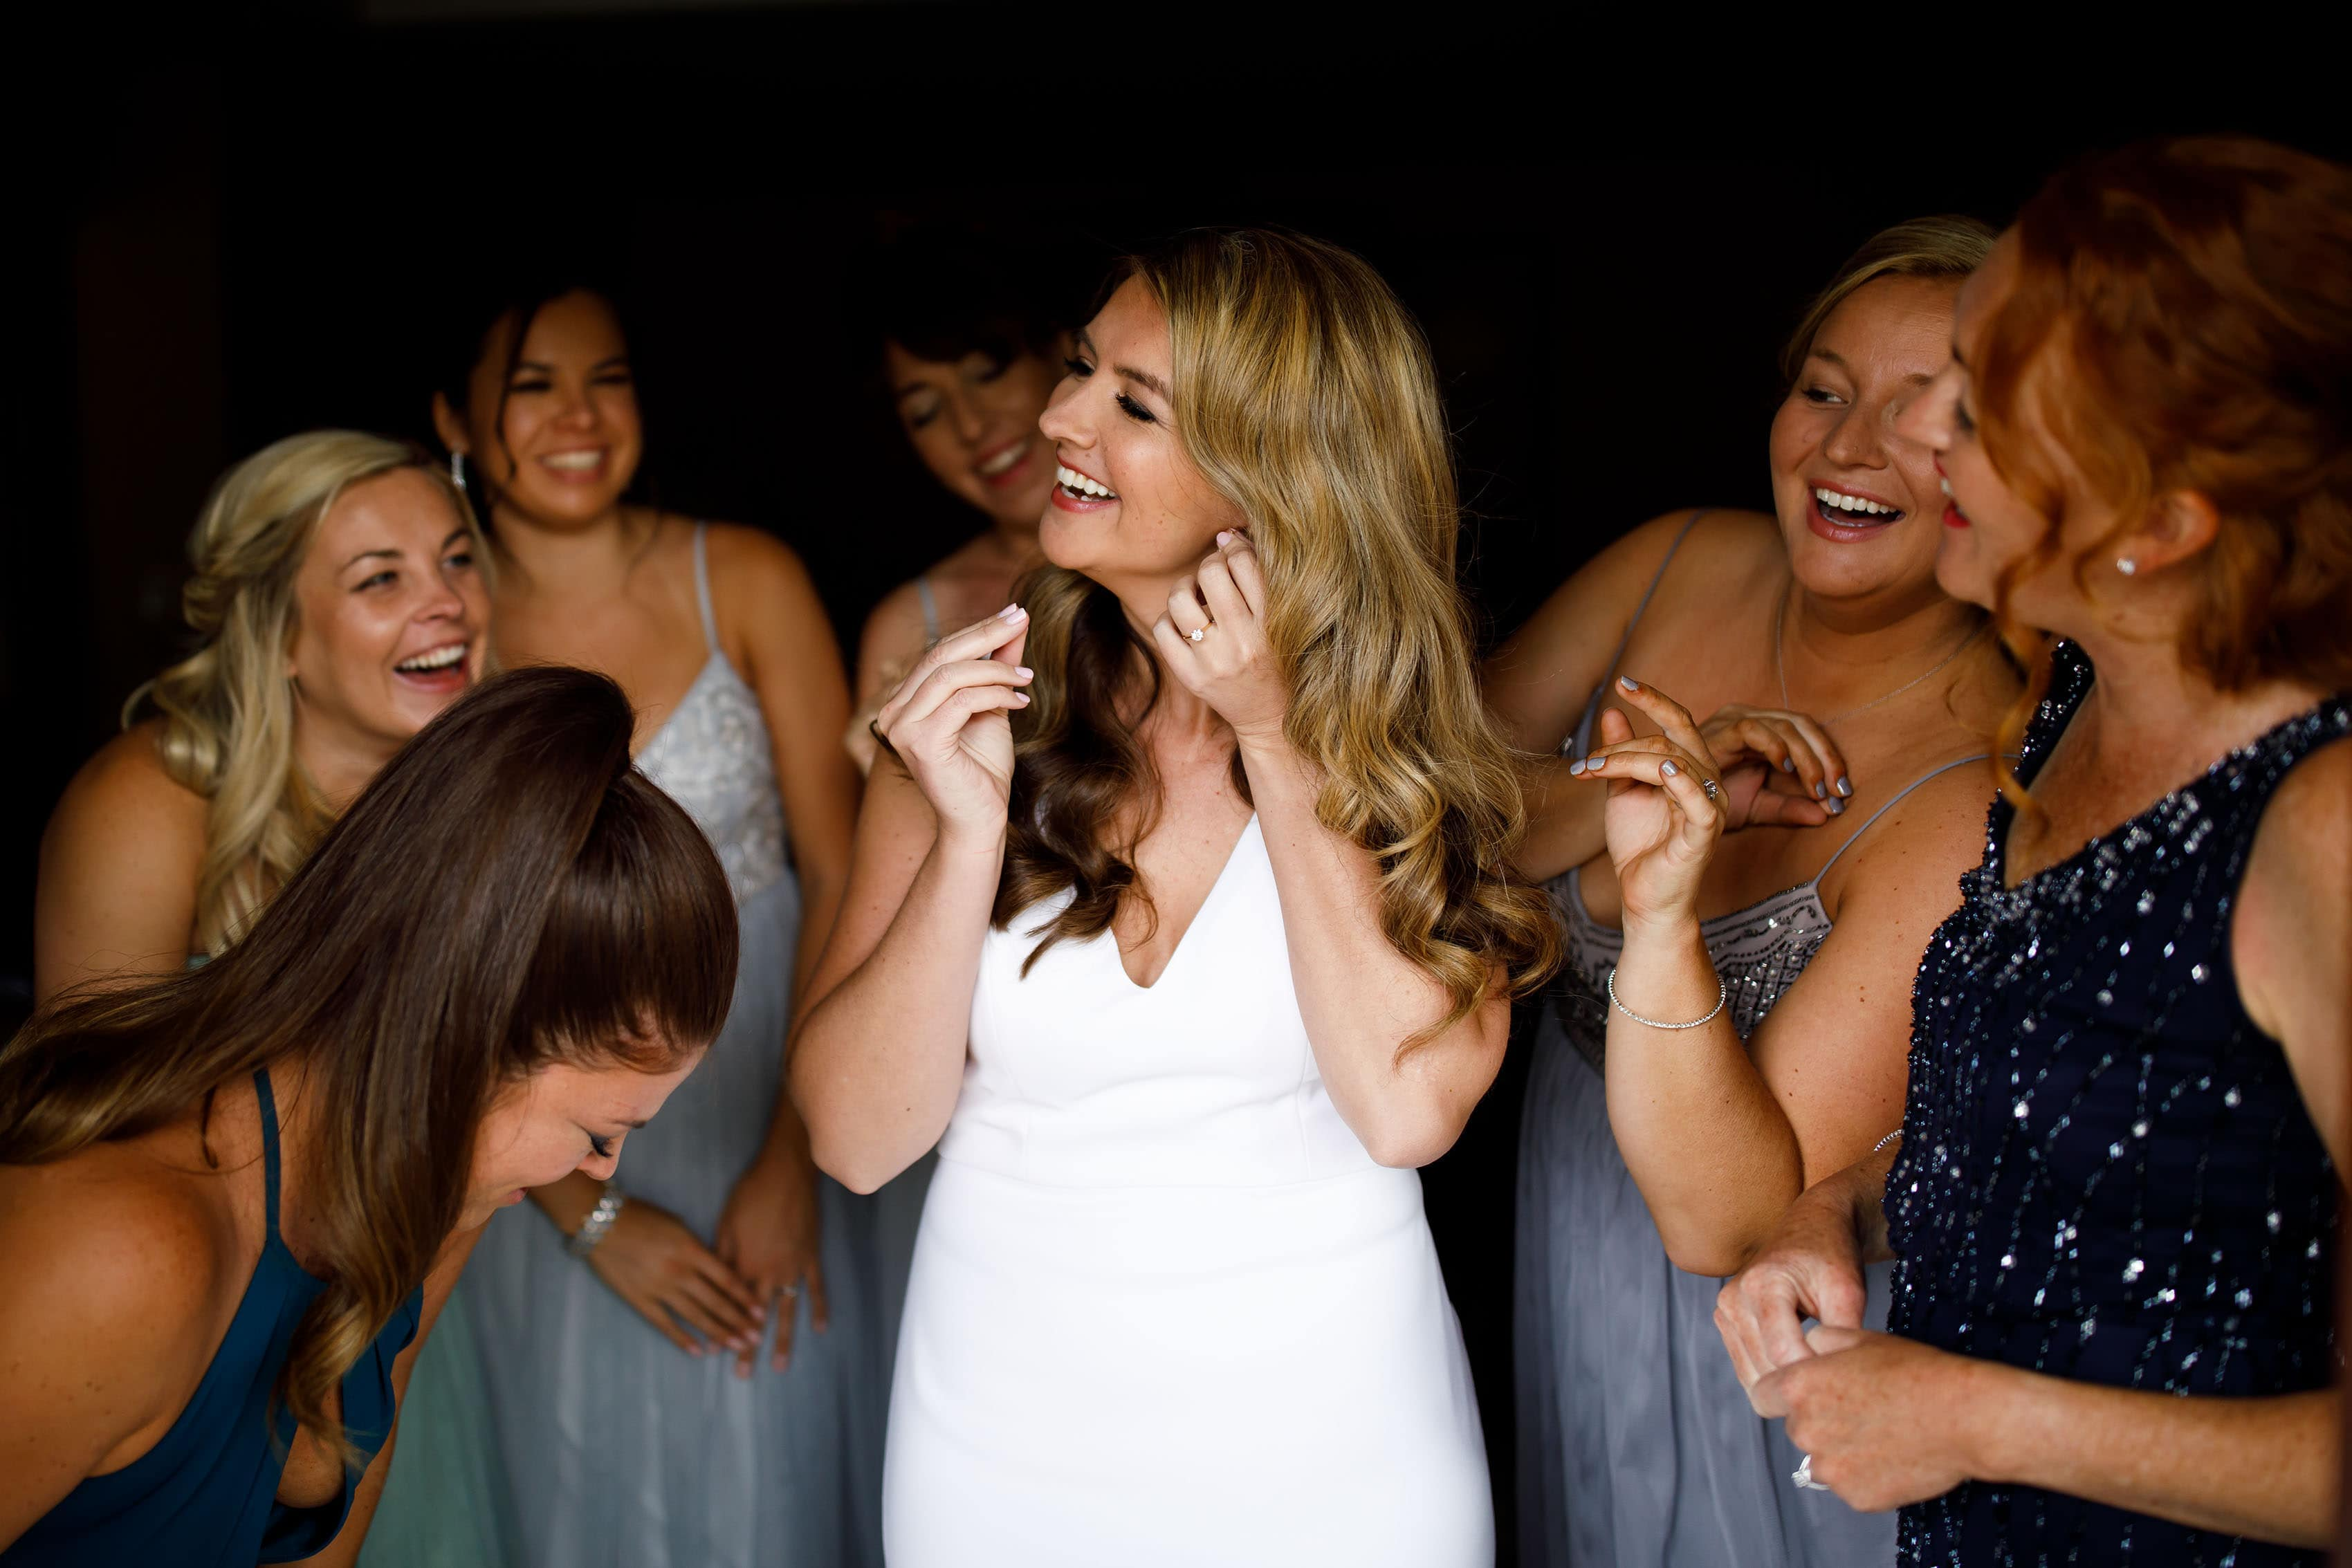 The bride puts on earrings with bridesmaids in Breckenridge